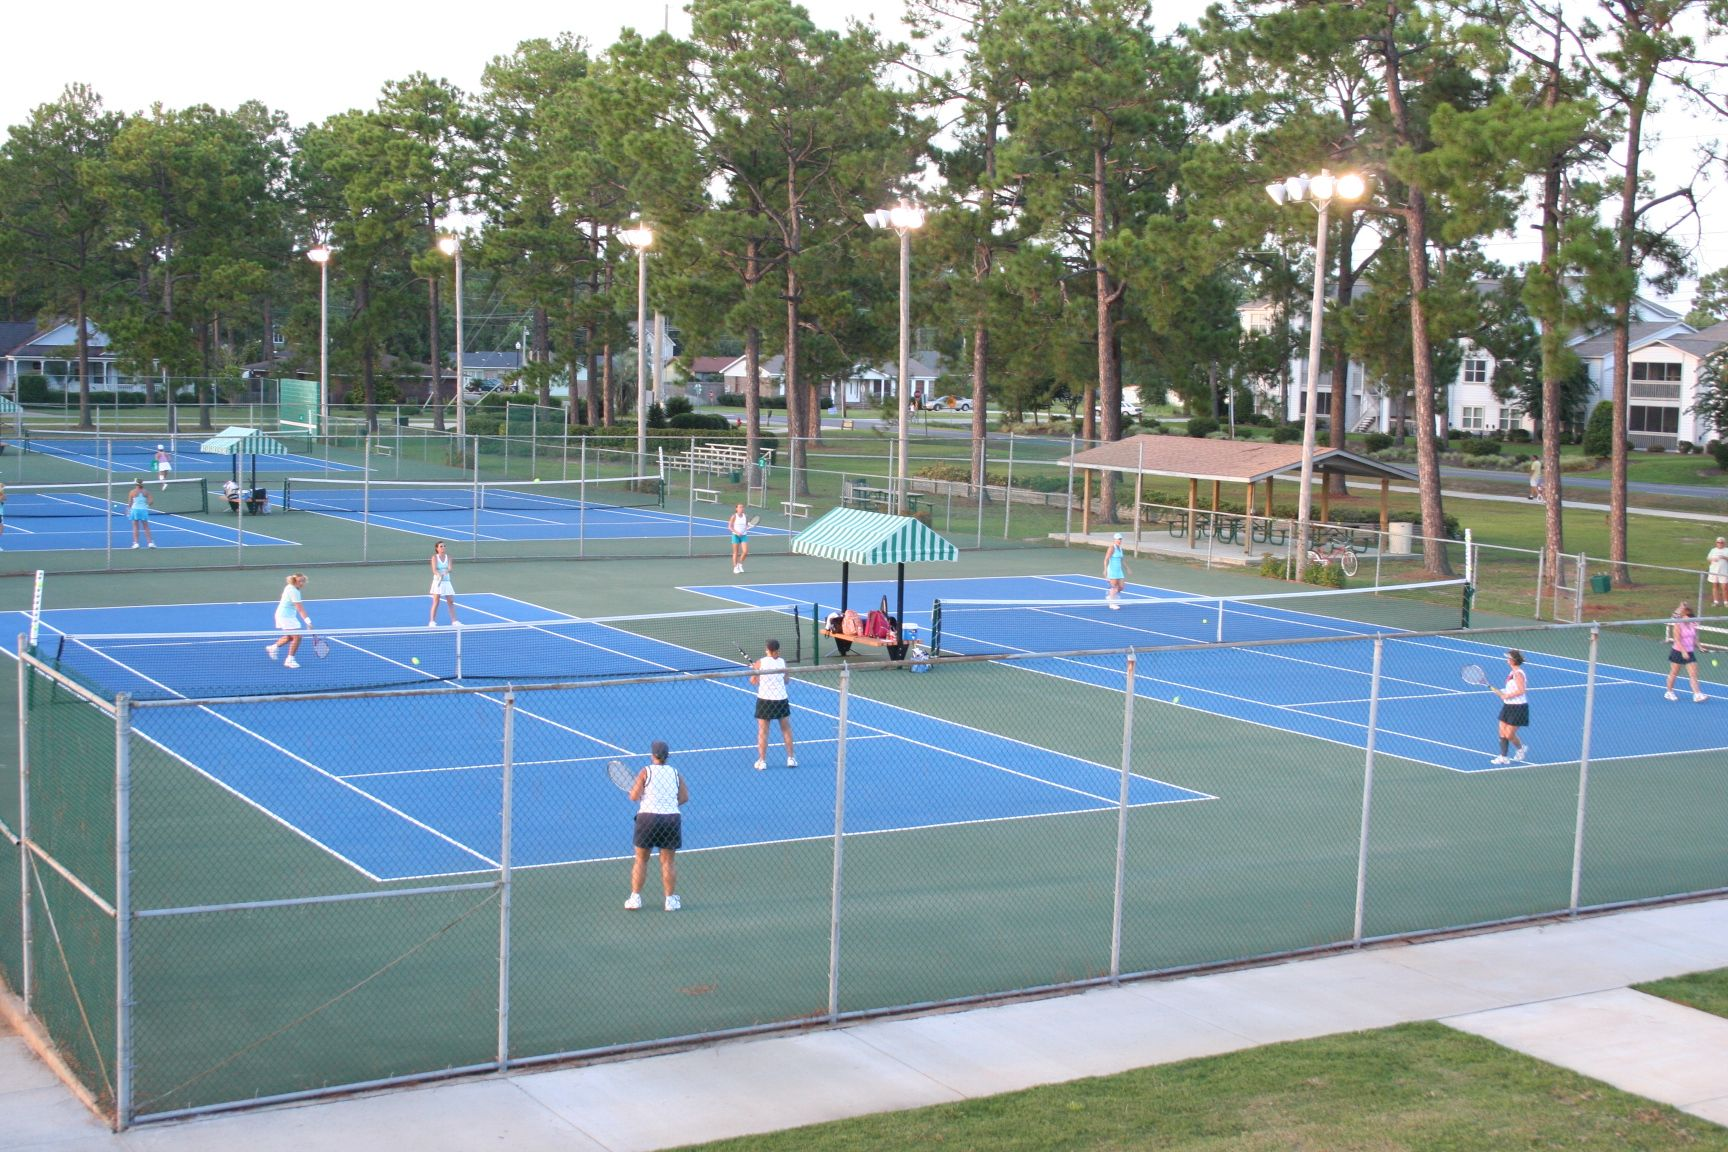 Located in Gulf Shores, The C. Meyer Tennis Center